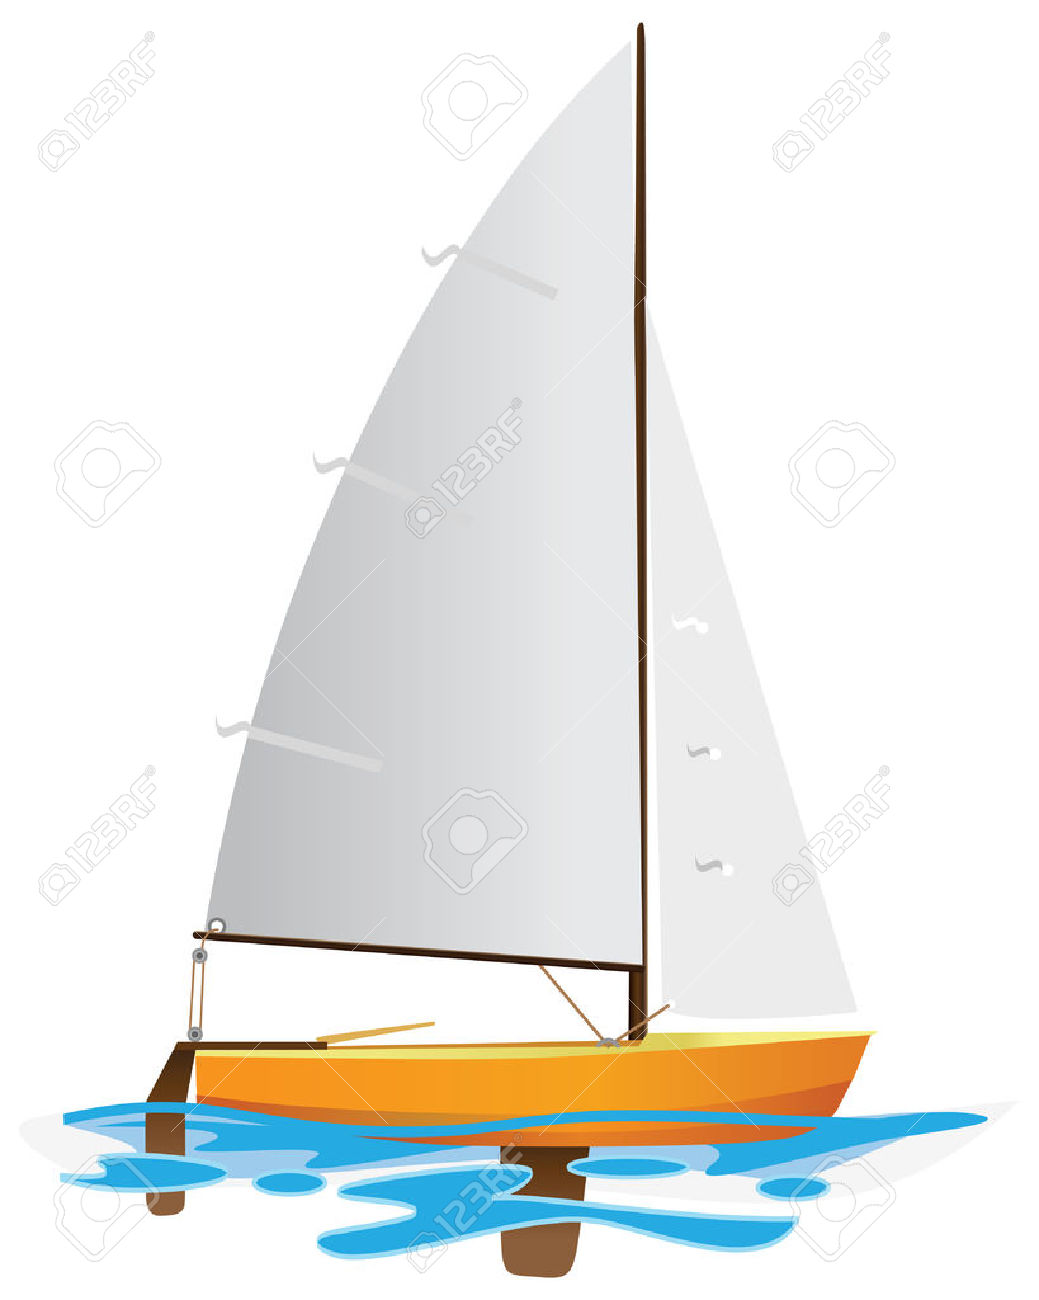 Sailing Boat Floating On Water Surface. Color Illustration.